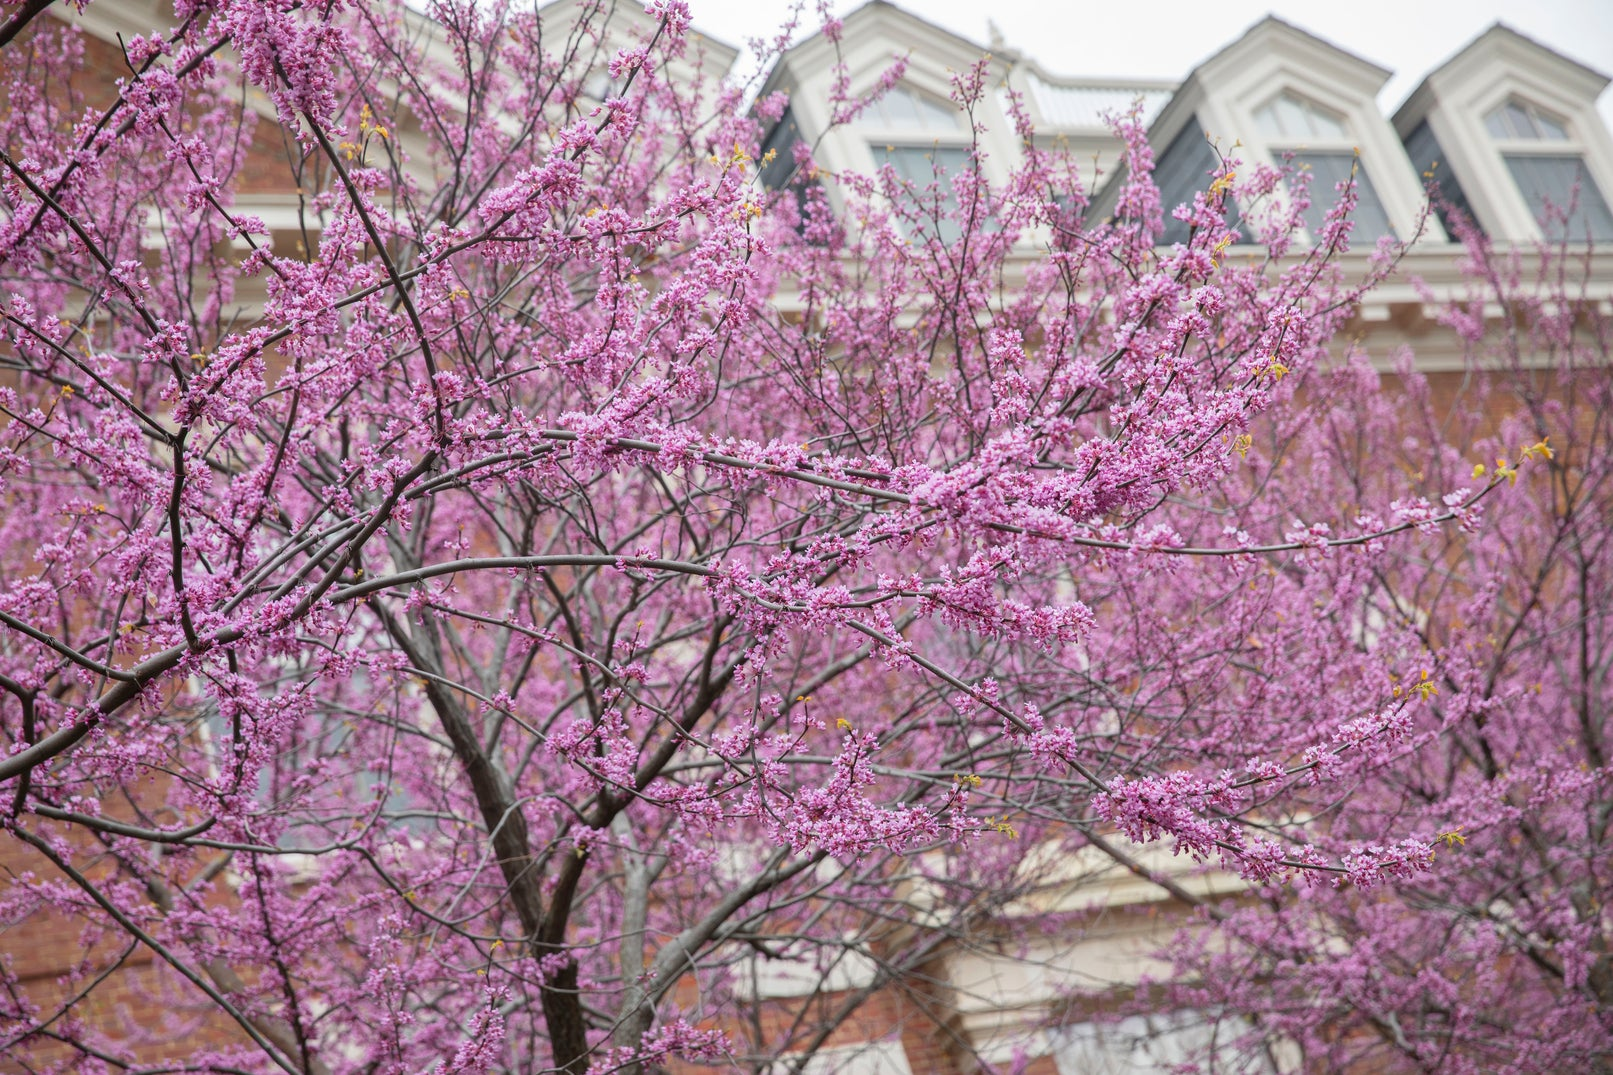 Pink flowers in bloom on branches of a tree